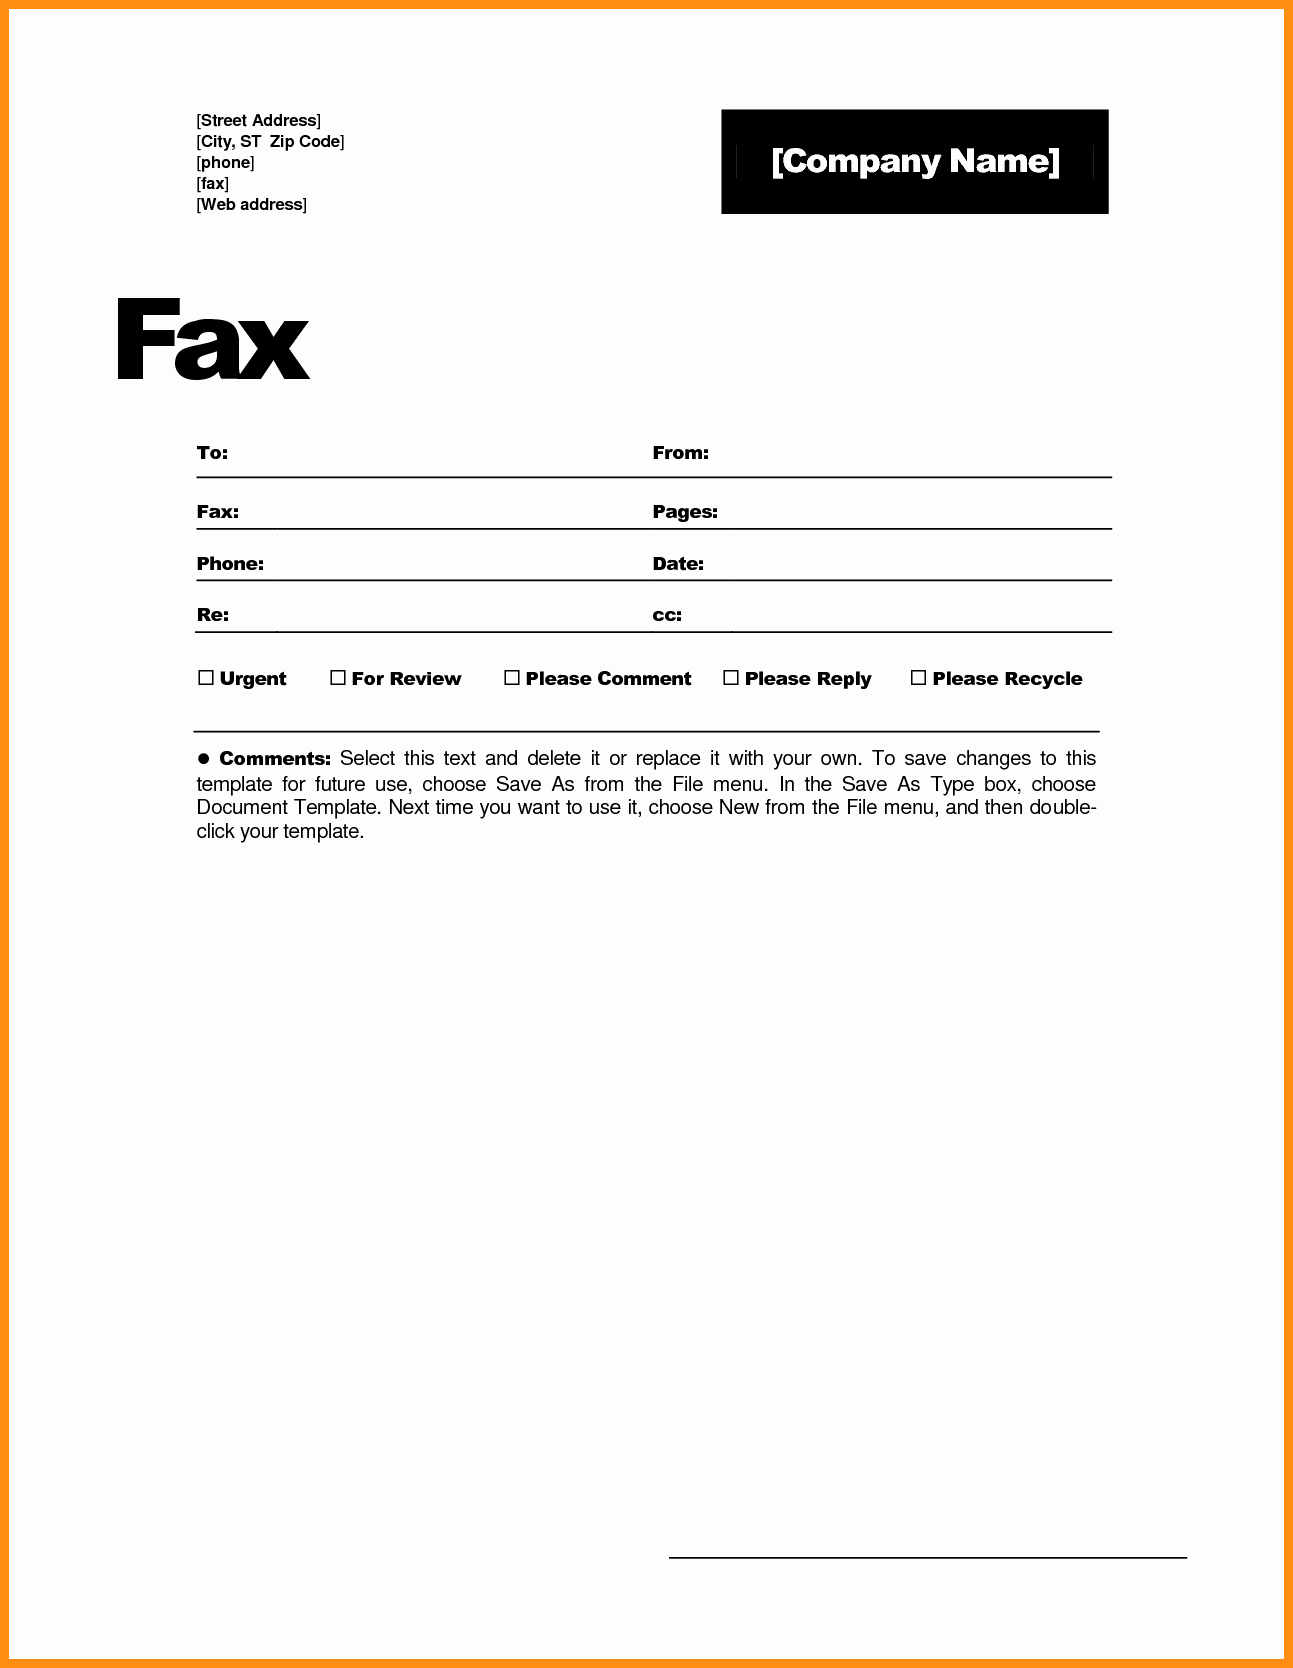 Word Template Fax Cover Sheet Awesome 6 Free Fax Cover Sheet Template Word